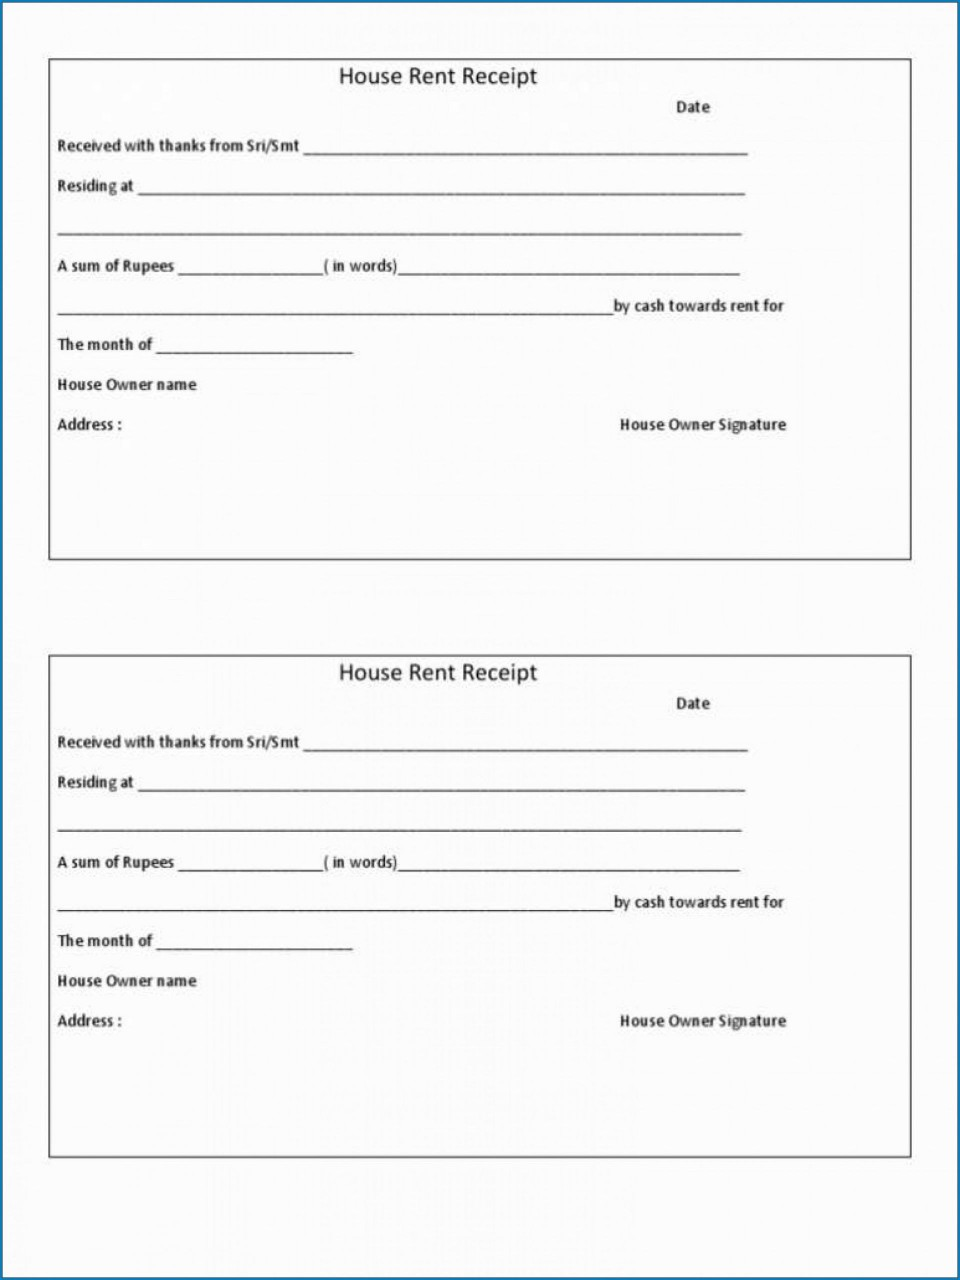 009 Magnificent Rent Receipt Sample Doc Design  Template India House Format Free Download960